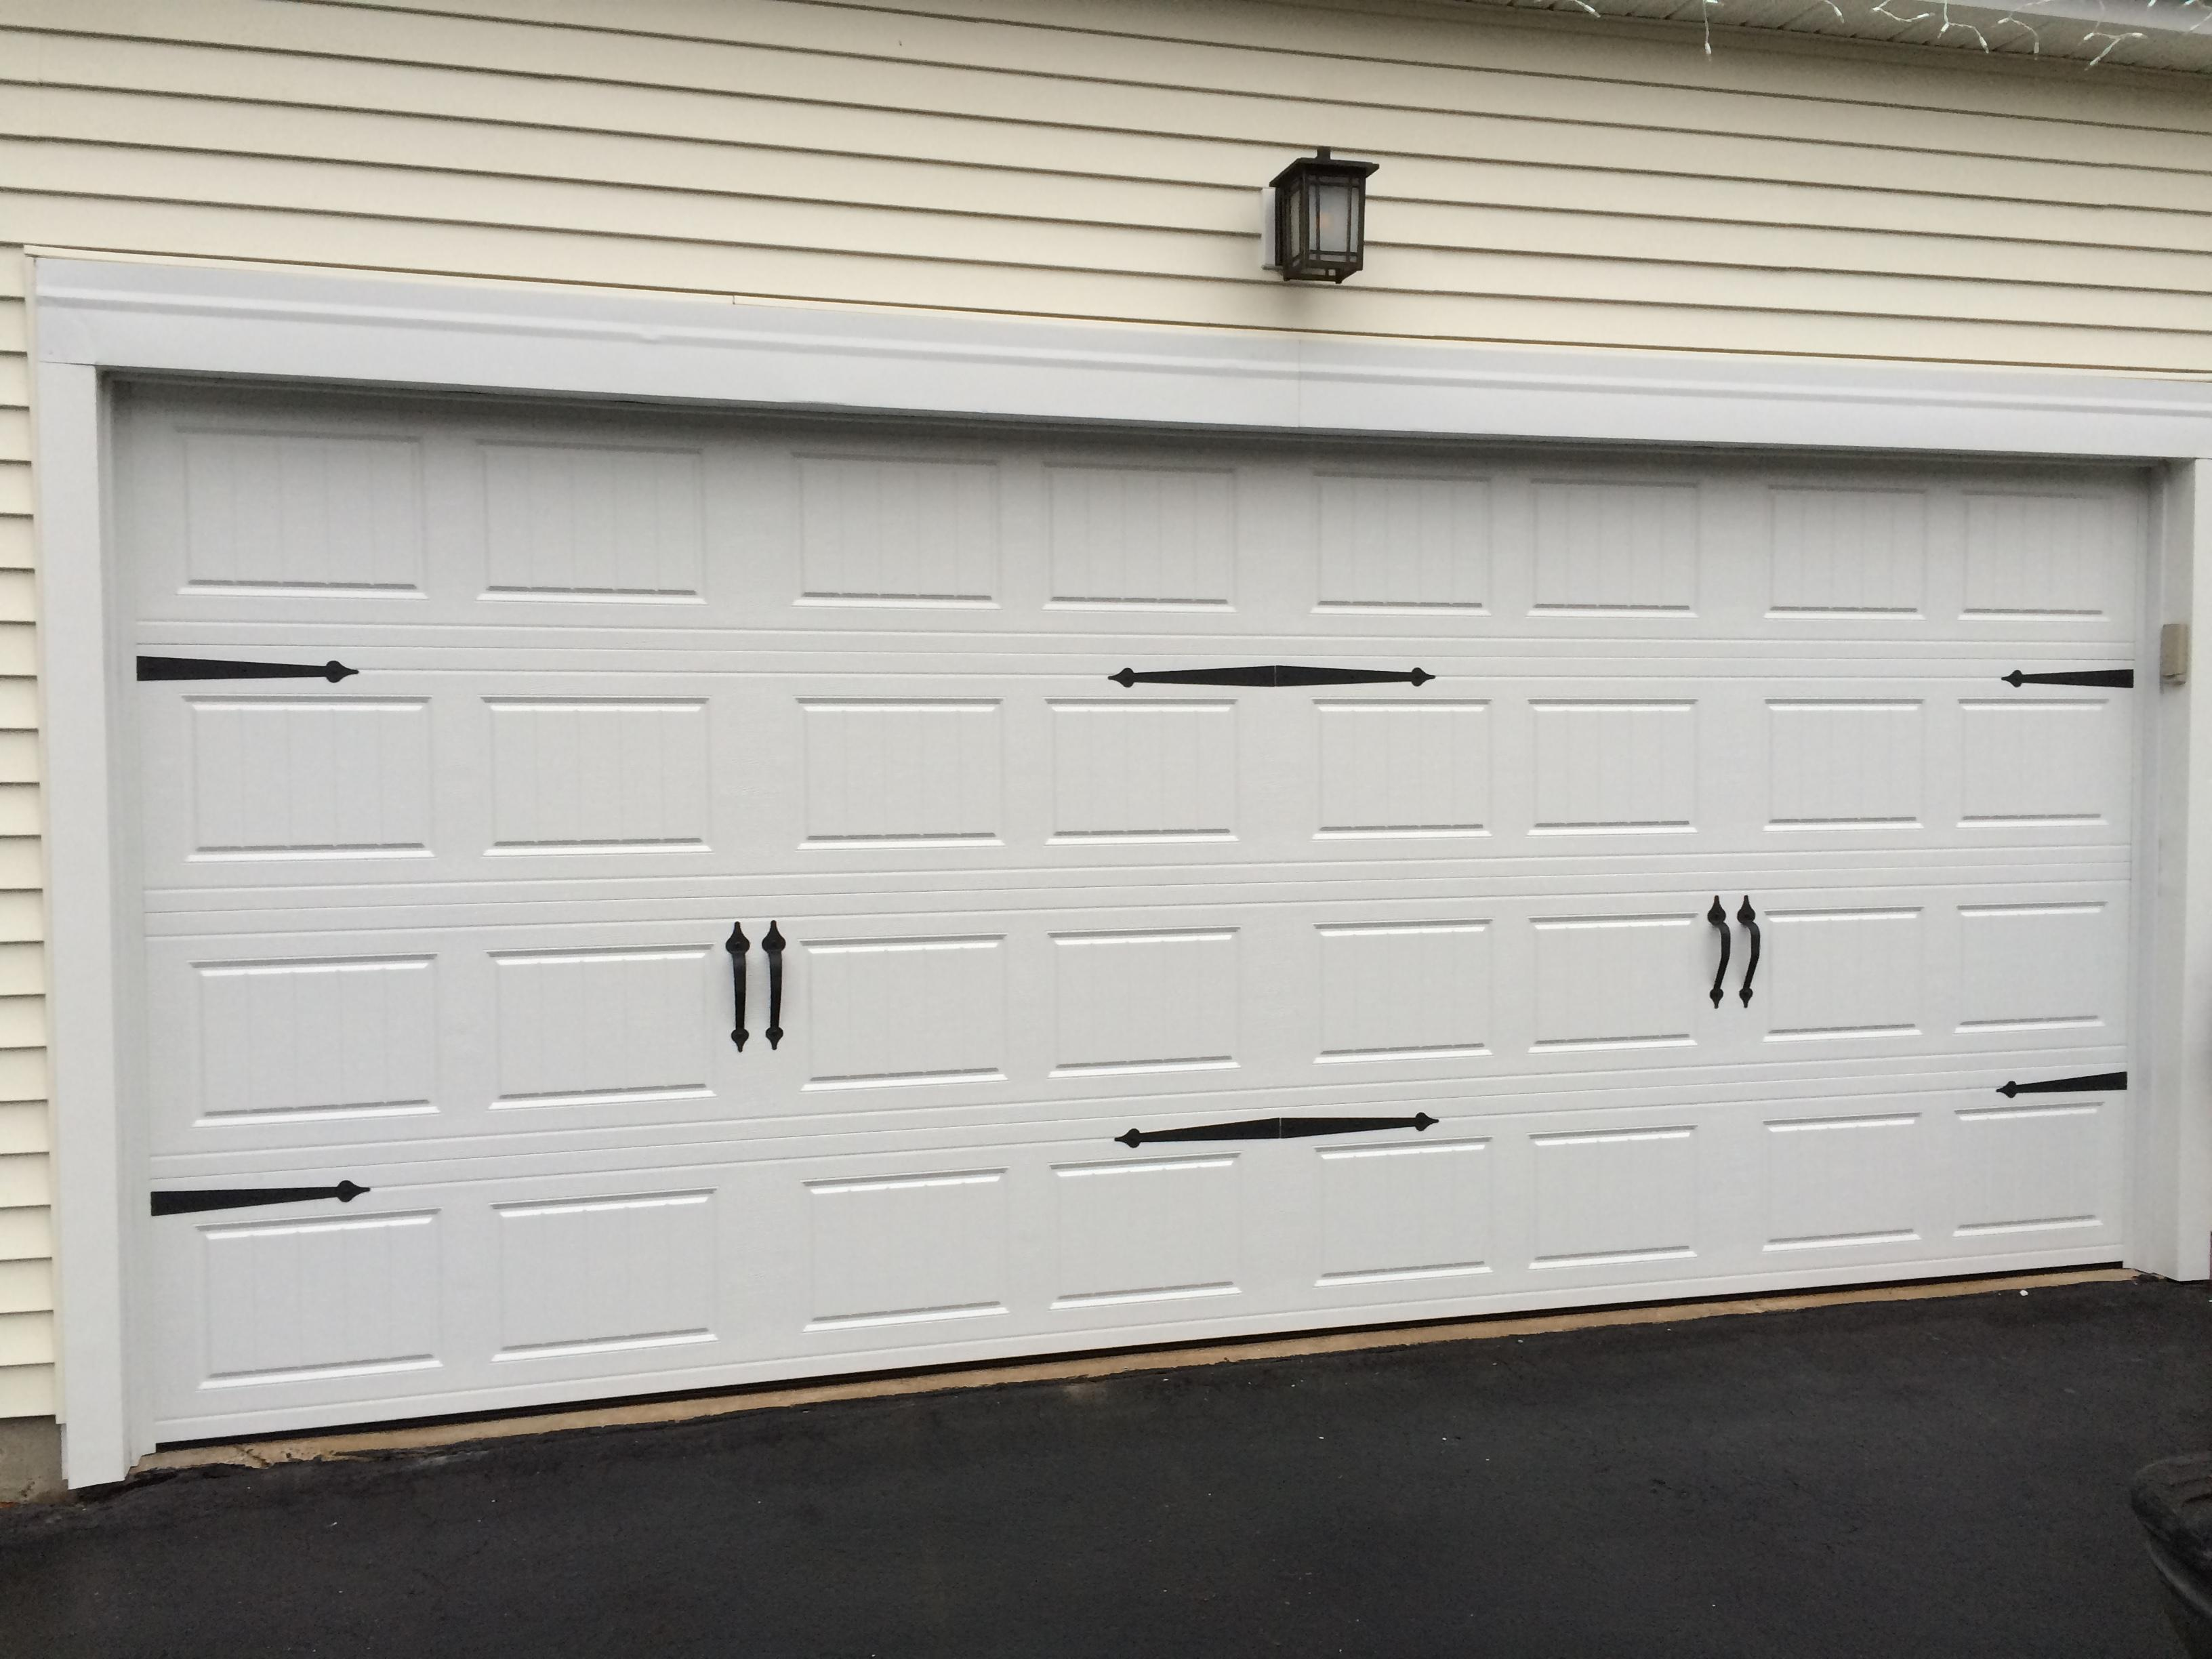 2448 #595042 Overhead Doors Solutions In West Haven CT 06516 ChamberofCommerce  image Overhead Garage Doors Residential Reviews 37133264